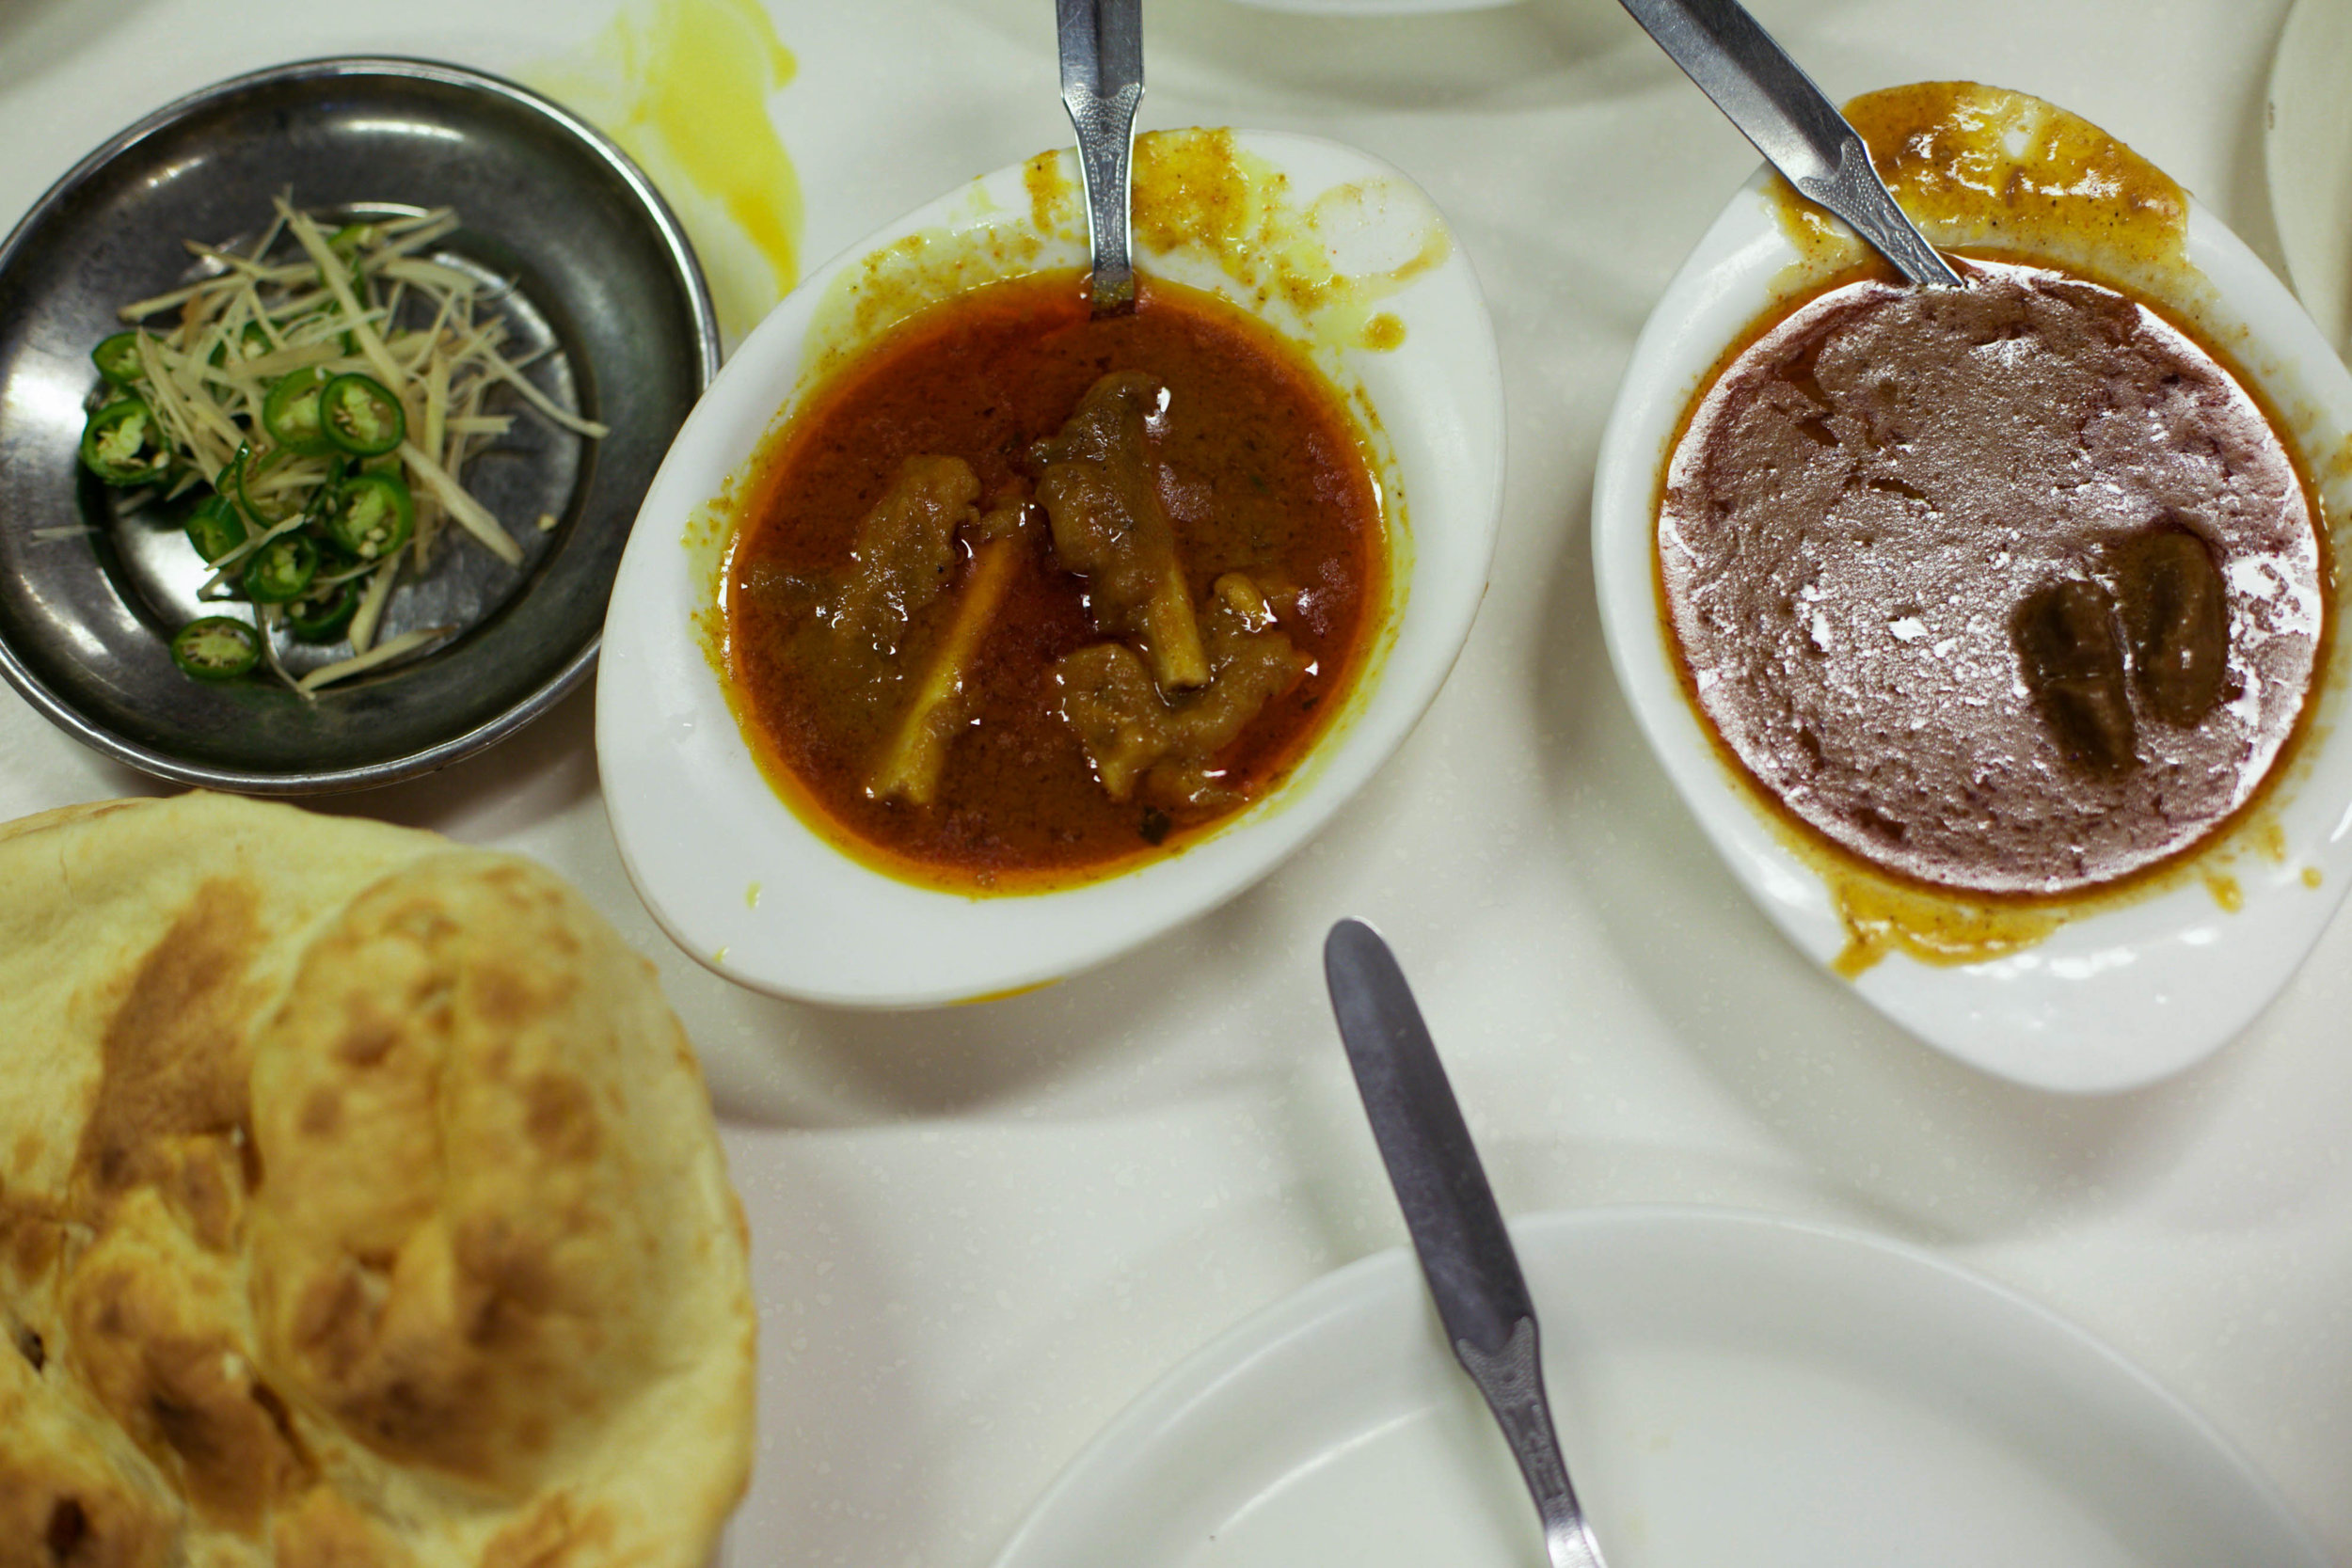 What breakfast in Old Delhi is complete without a portion of Nalli Nihari? Traditionally served after morning prayers, this dish of tender mutton, is slow-cooked till falling off the bone, to be mopped up with soft, fluffy bread.